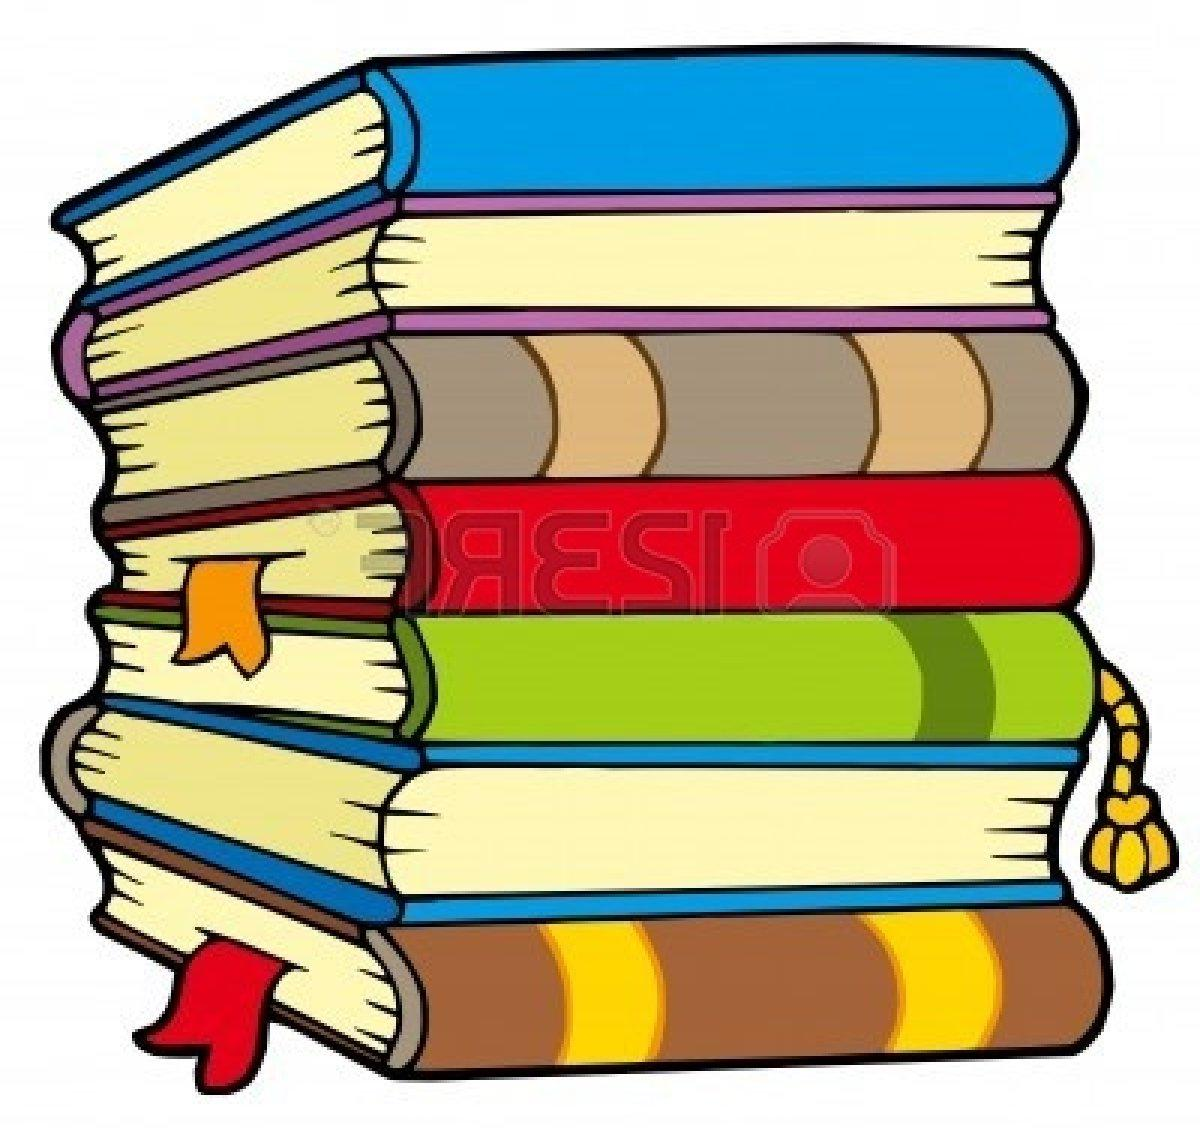 1200x1128 Best 15 Stack Of Books Image Clipart School Book Clip Art Design